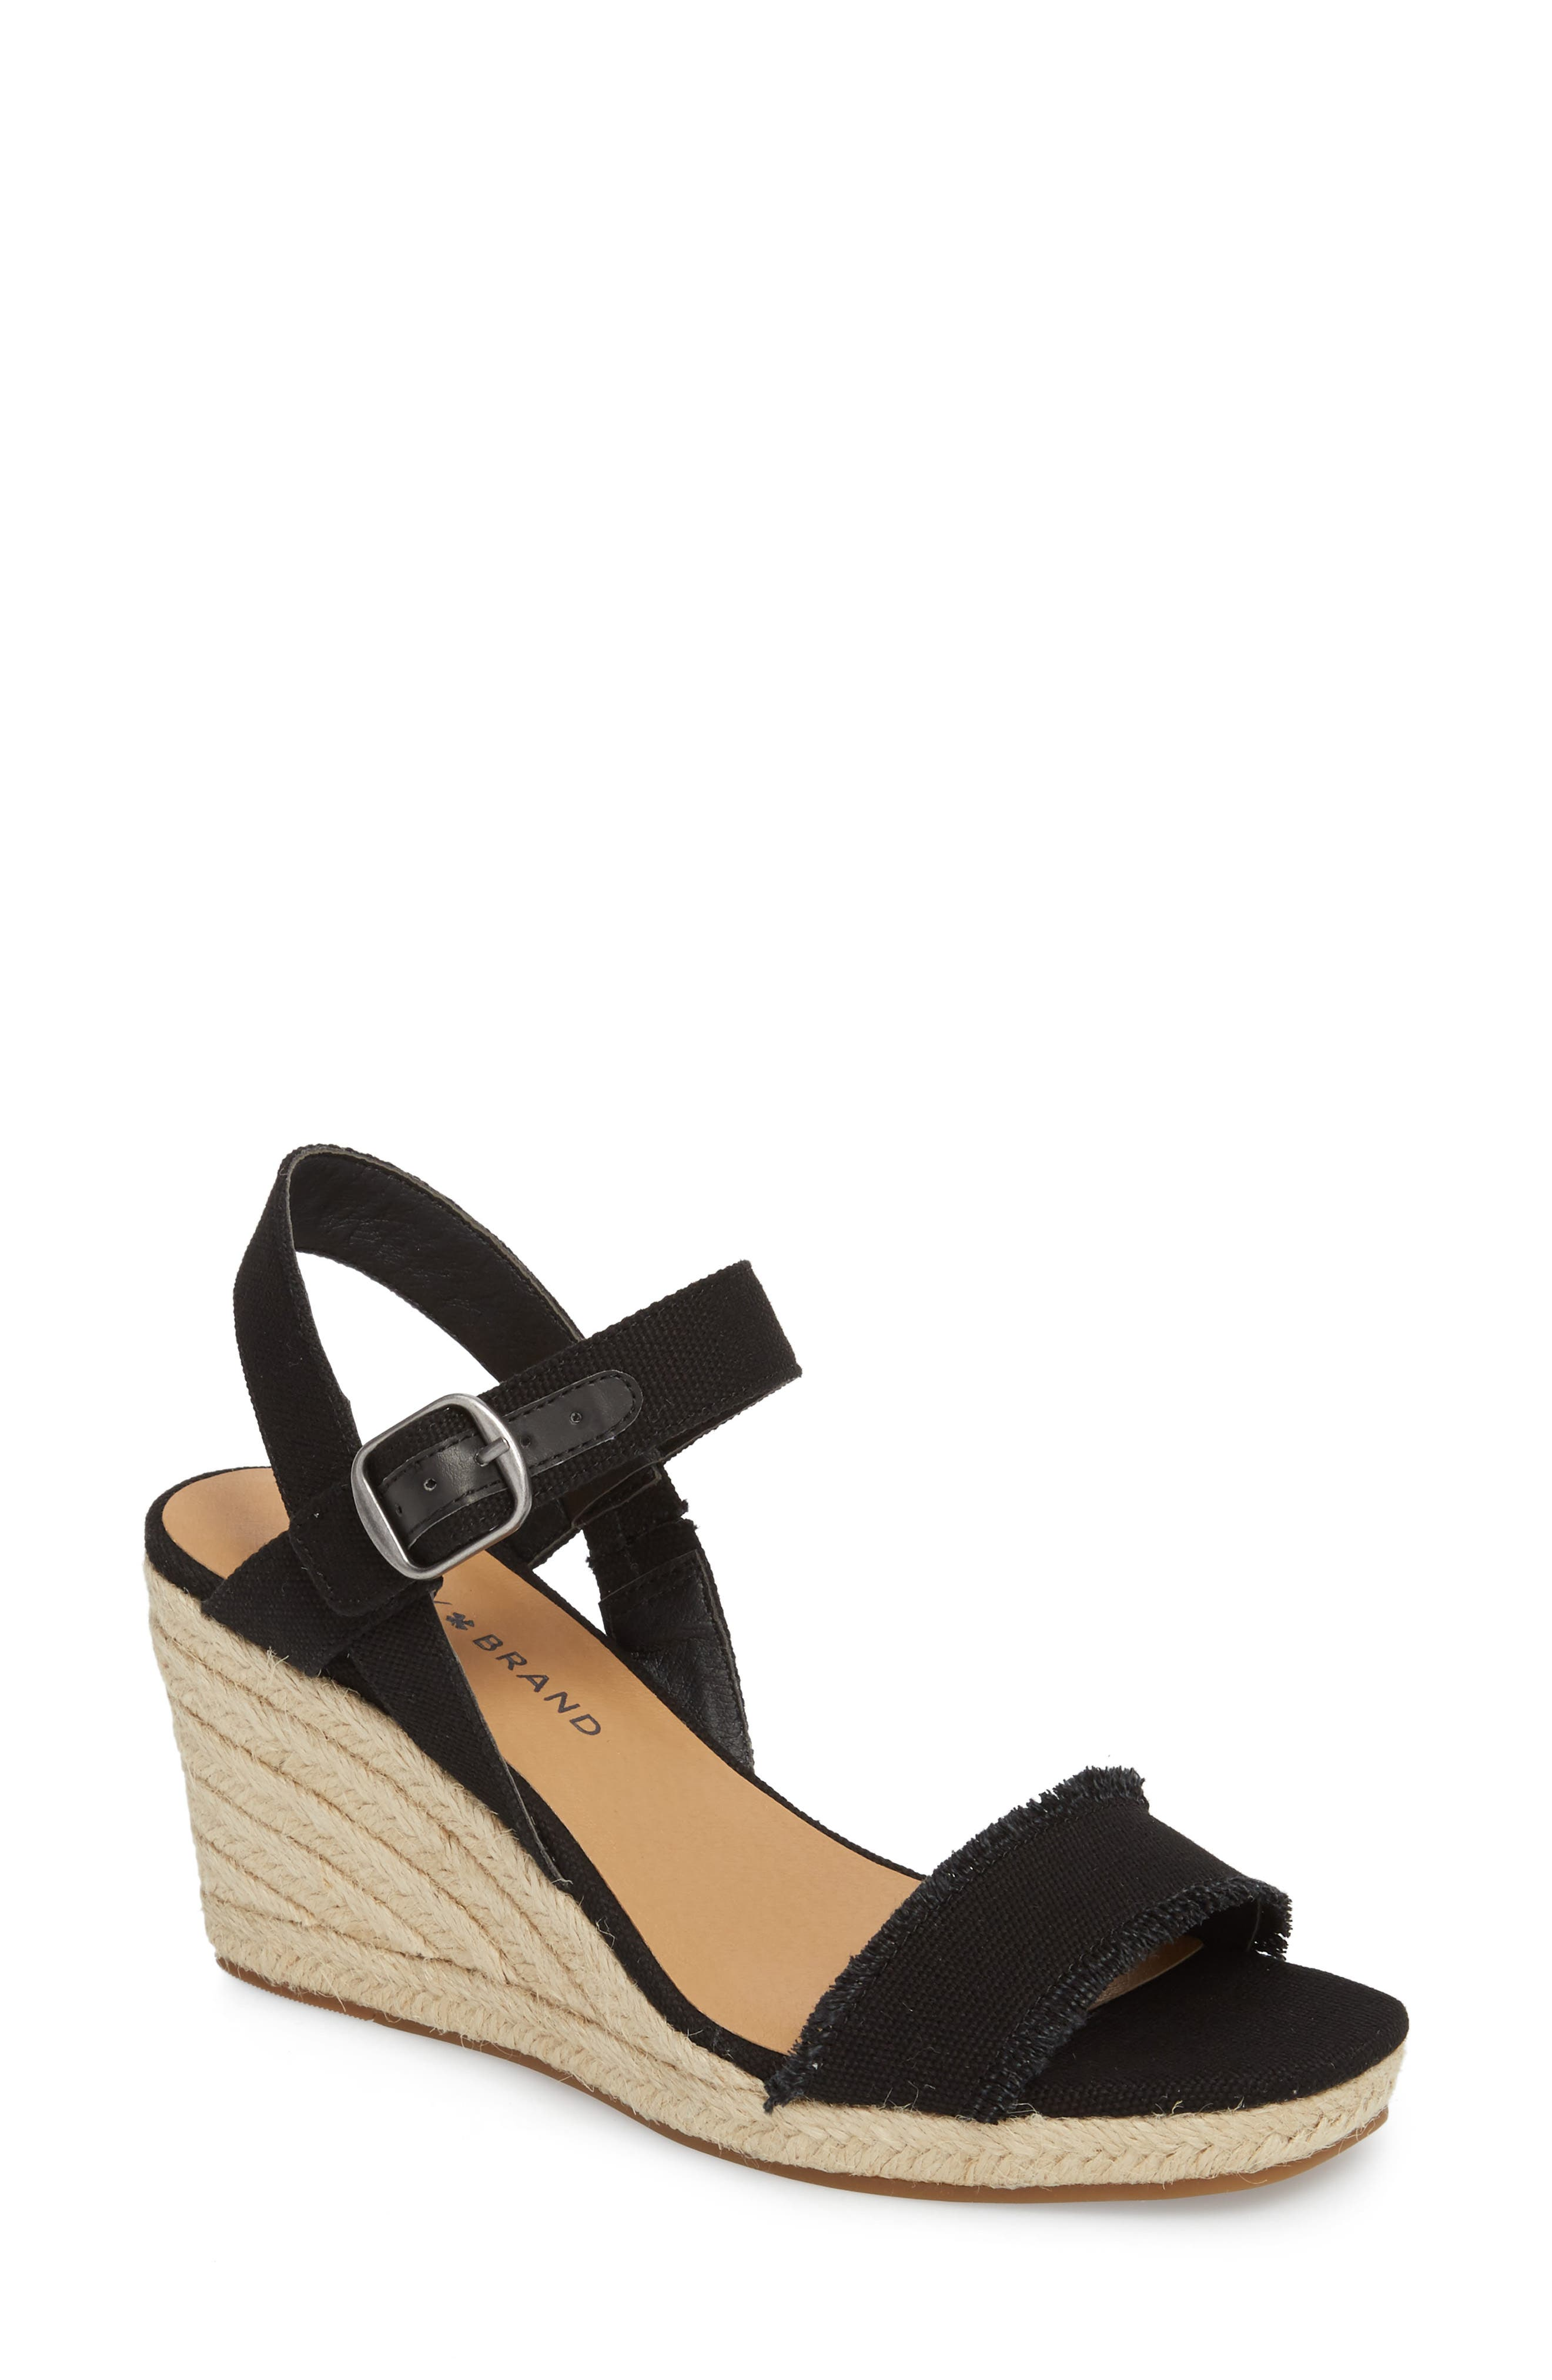 Marceline Squared Toe Wedge Sandal,                         Main,                         color, 001